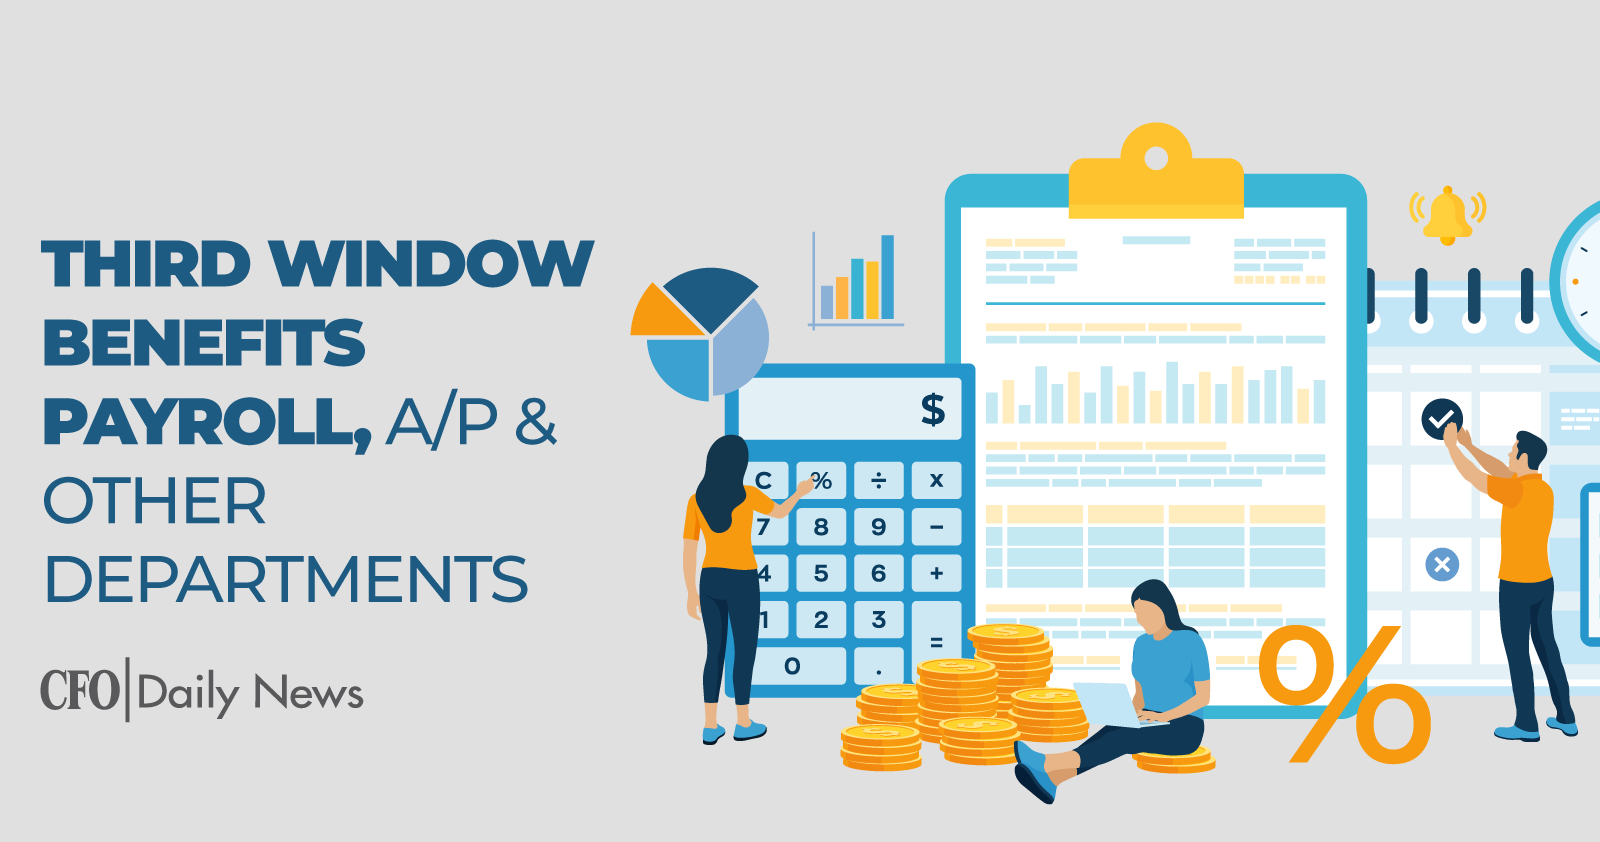 Third Window Benefits Payroll A/P & Other Departments